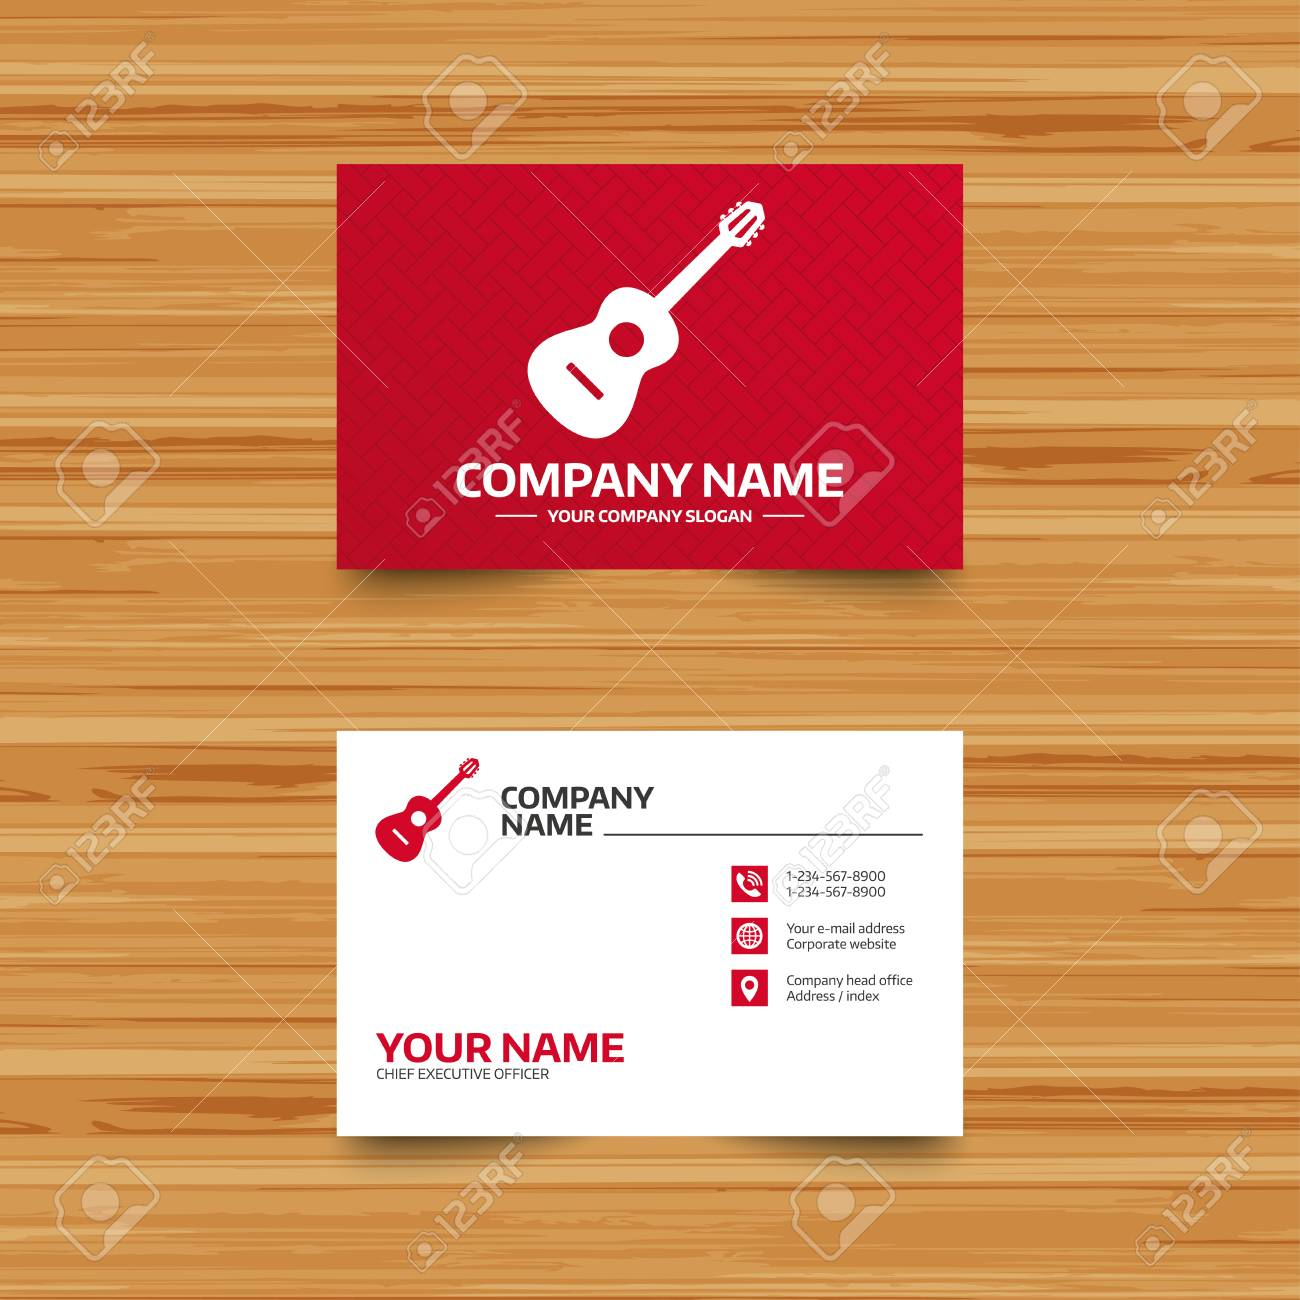 Business card template acoustic guitar sign icon music symbol business card template acoustic guitar sign icon music symbol phone globe and reheart Choice Image